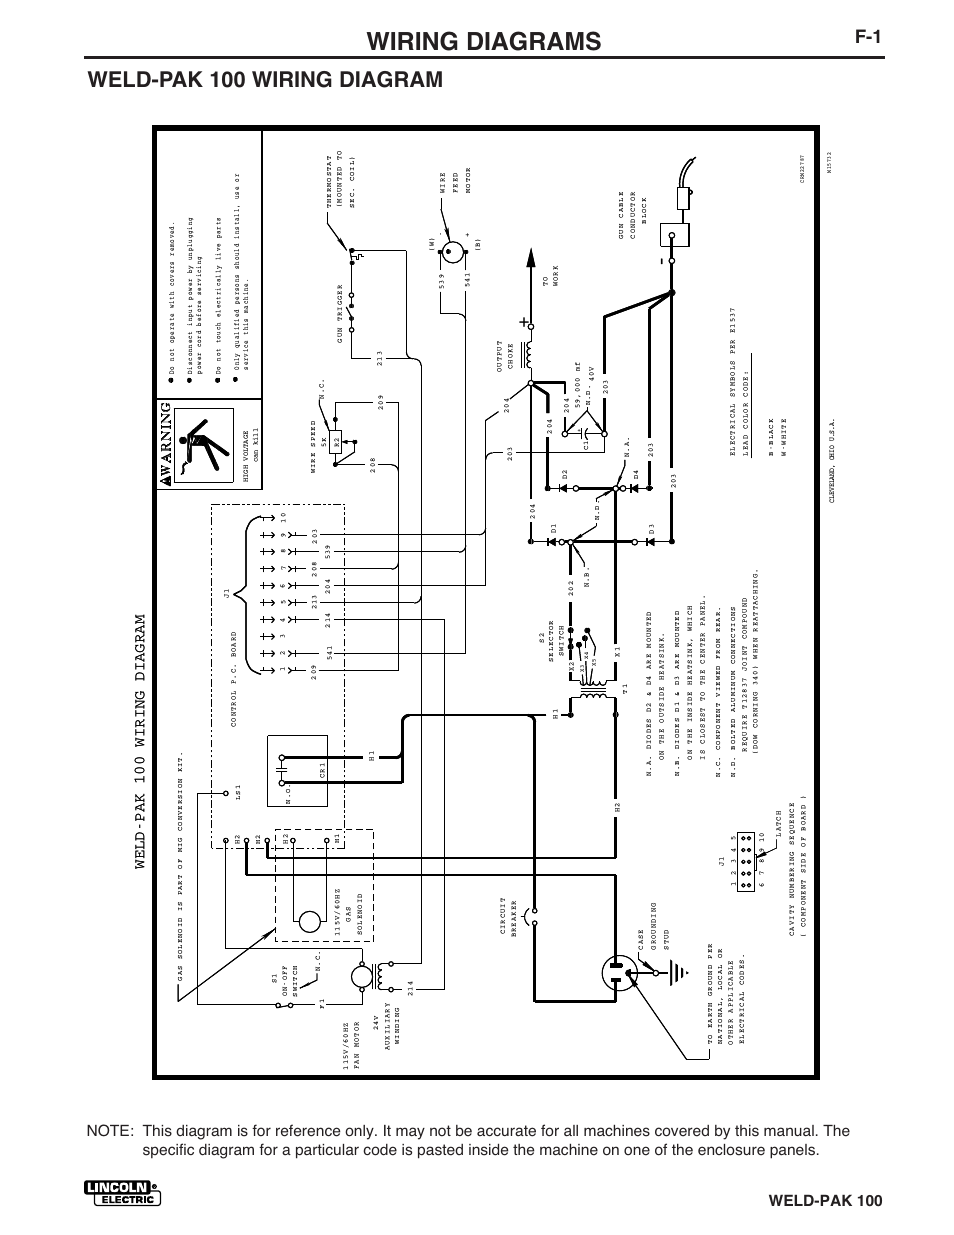 lincoln weld pak 100 wiring diagram lincoln printable wiring diagrams weld pak 100 wiring diagram weld pak 100 on lincoln weld pak 100